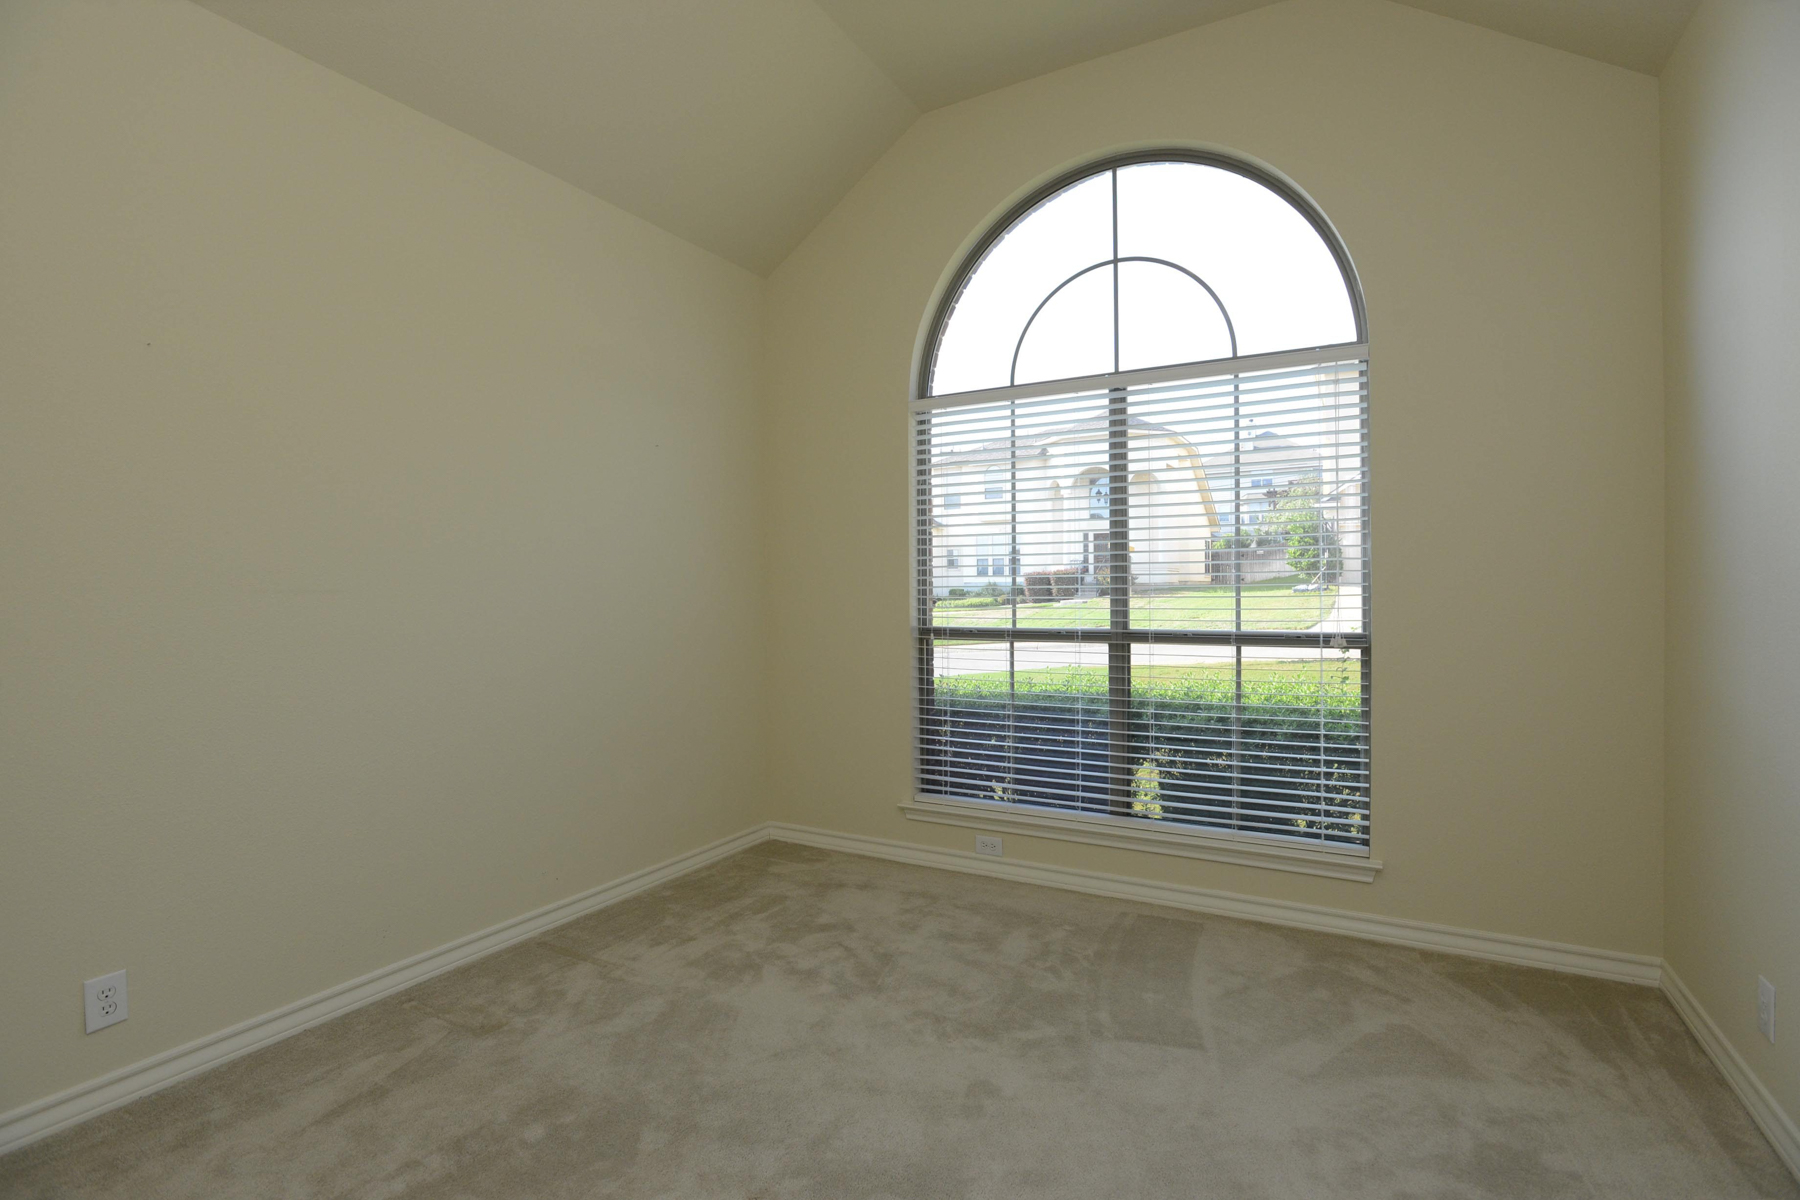 Additional photo for property listing at SIngle-Story Rental in Sonterra 538 Bosque Vista San Antonio, Texas 78258 United States